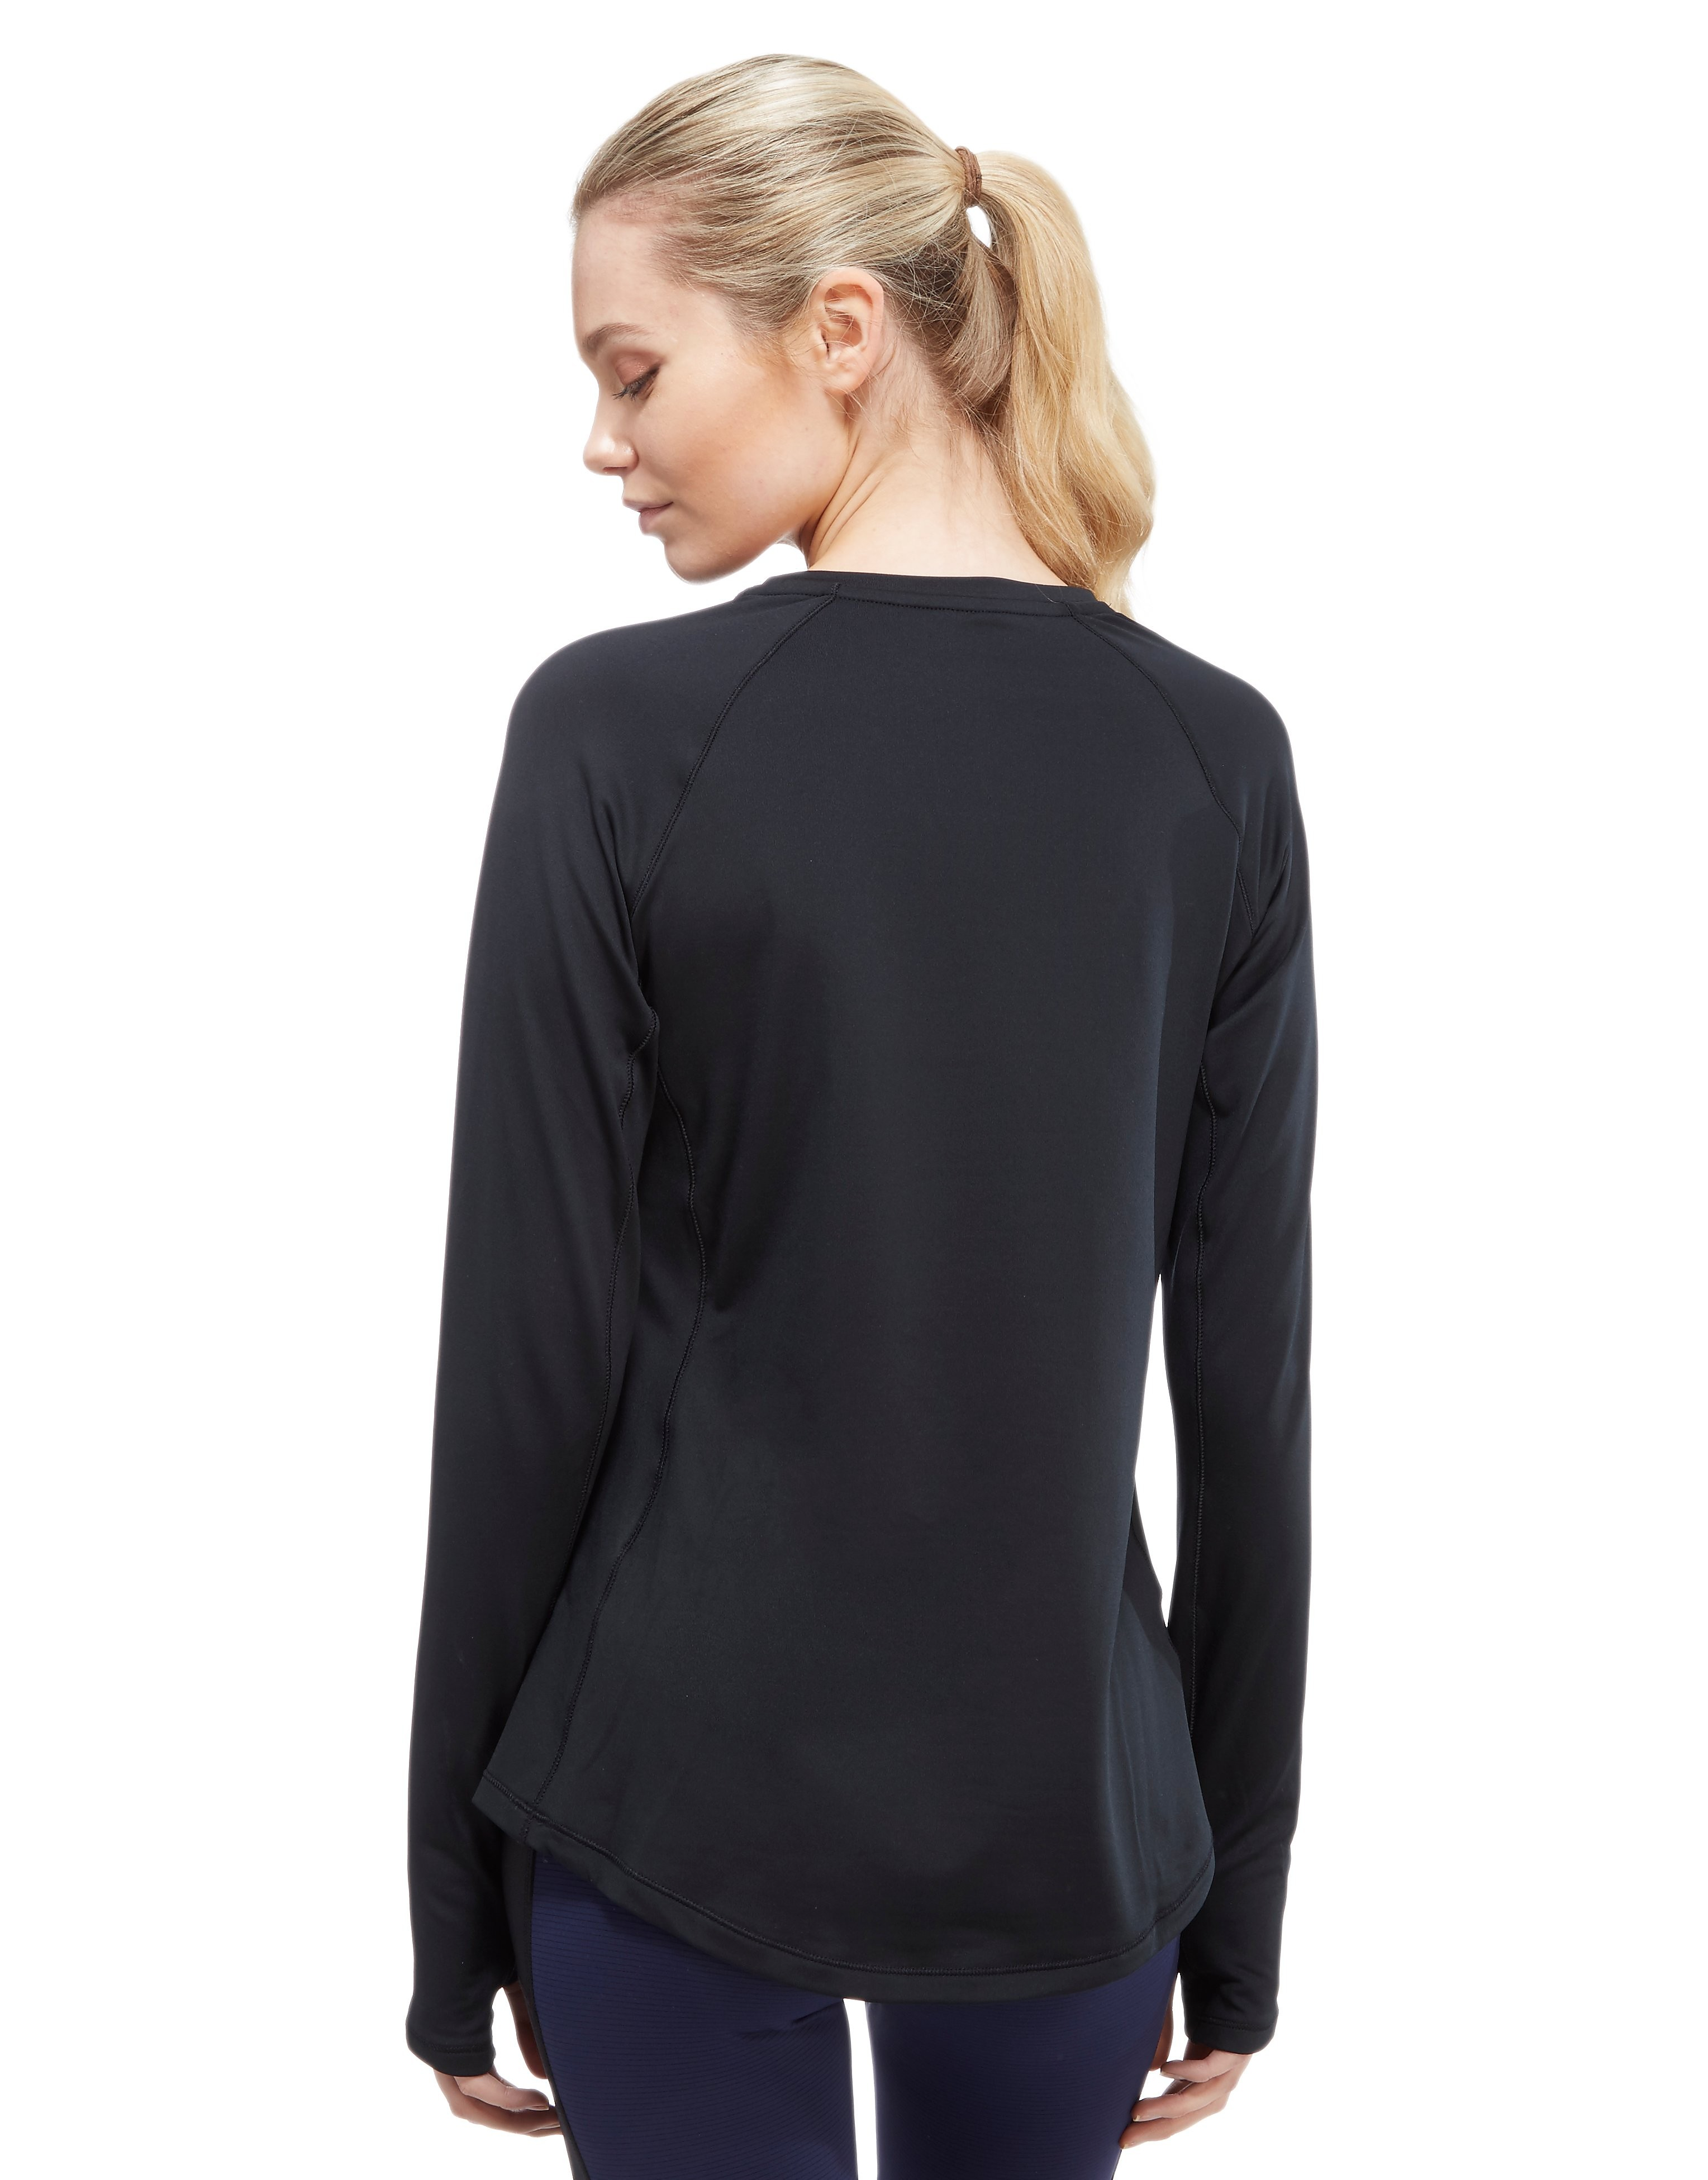 Under Armour ColdGear Longsleeve T-Shirt